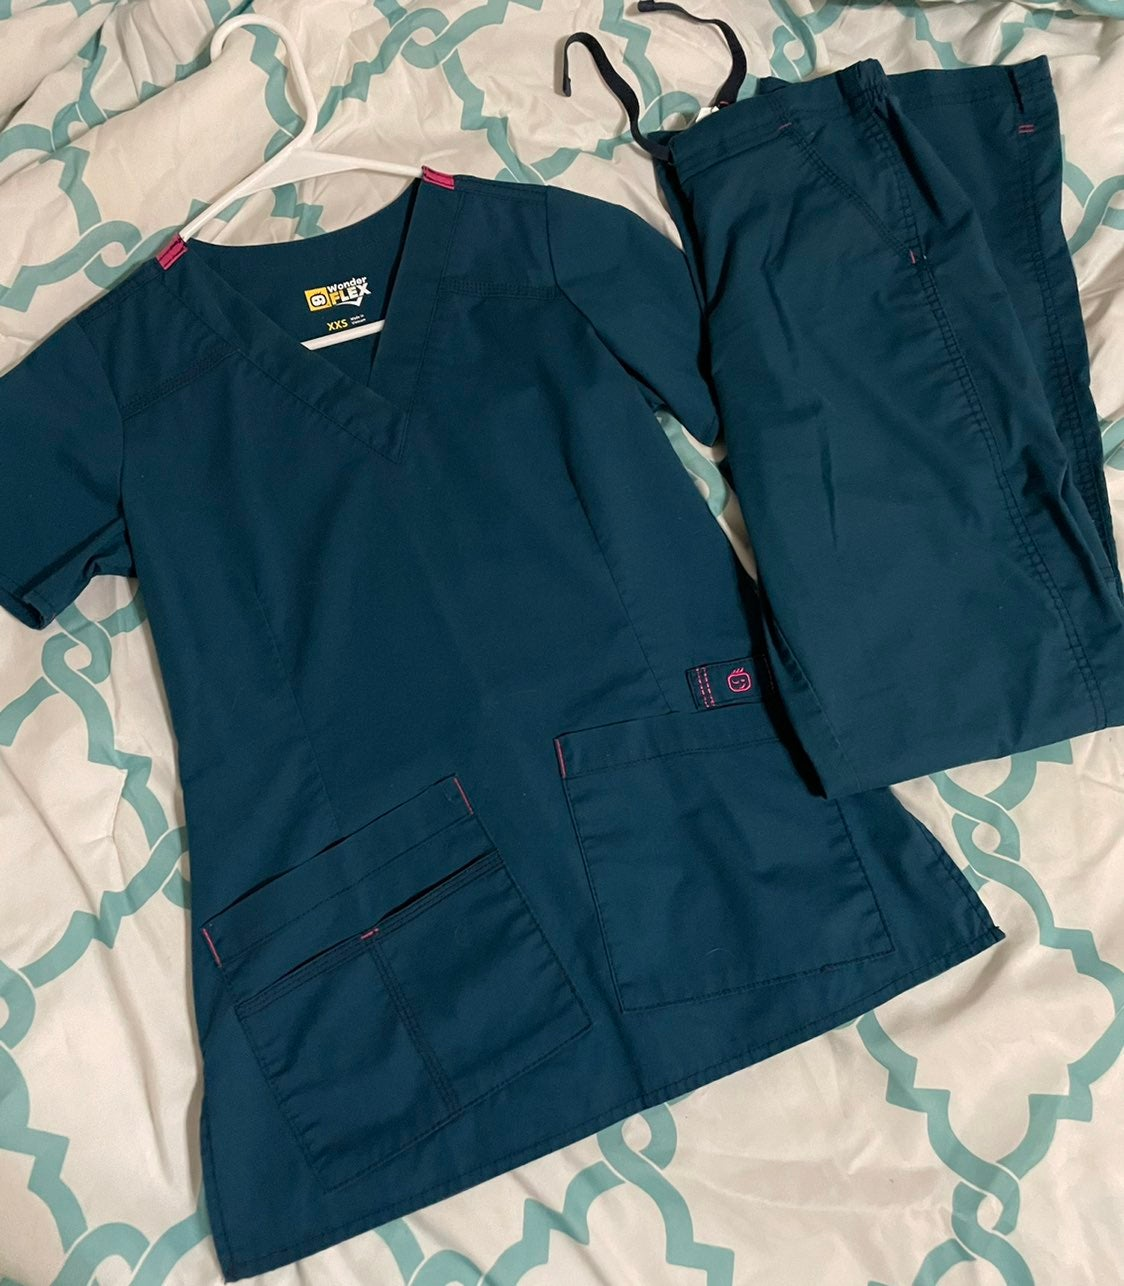 Two pairs of scrubs